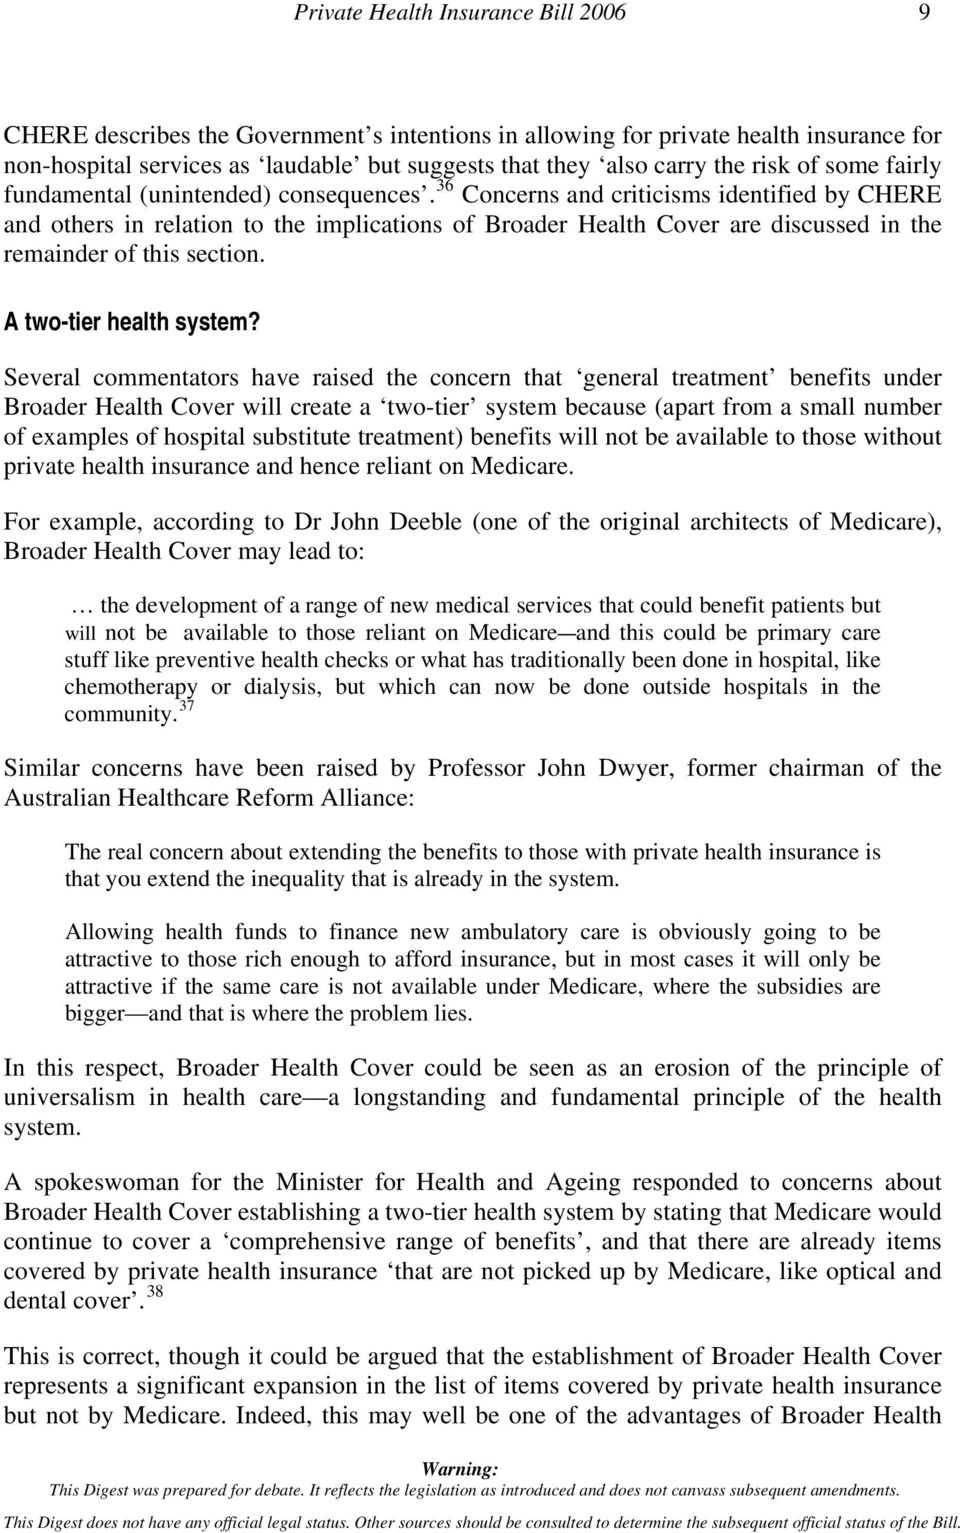 36 Concerns and criticisms identified by CHERE and others in relation to the implications of Broader Health Cover are discussed in the remainder of this section. A two-tier health system?